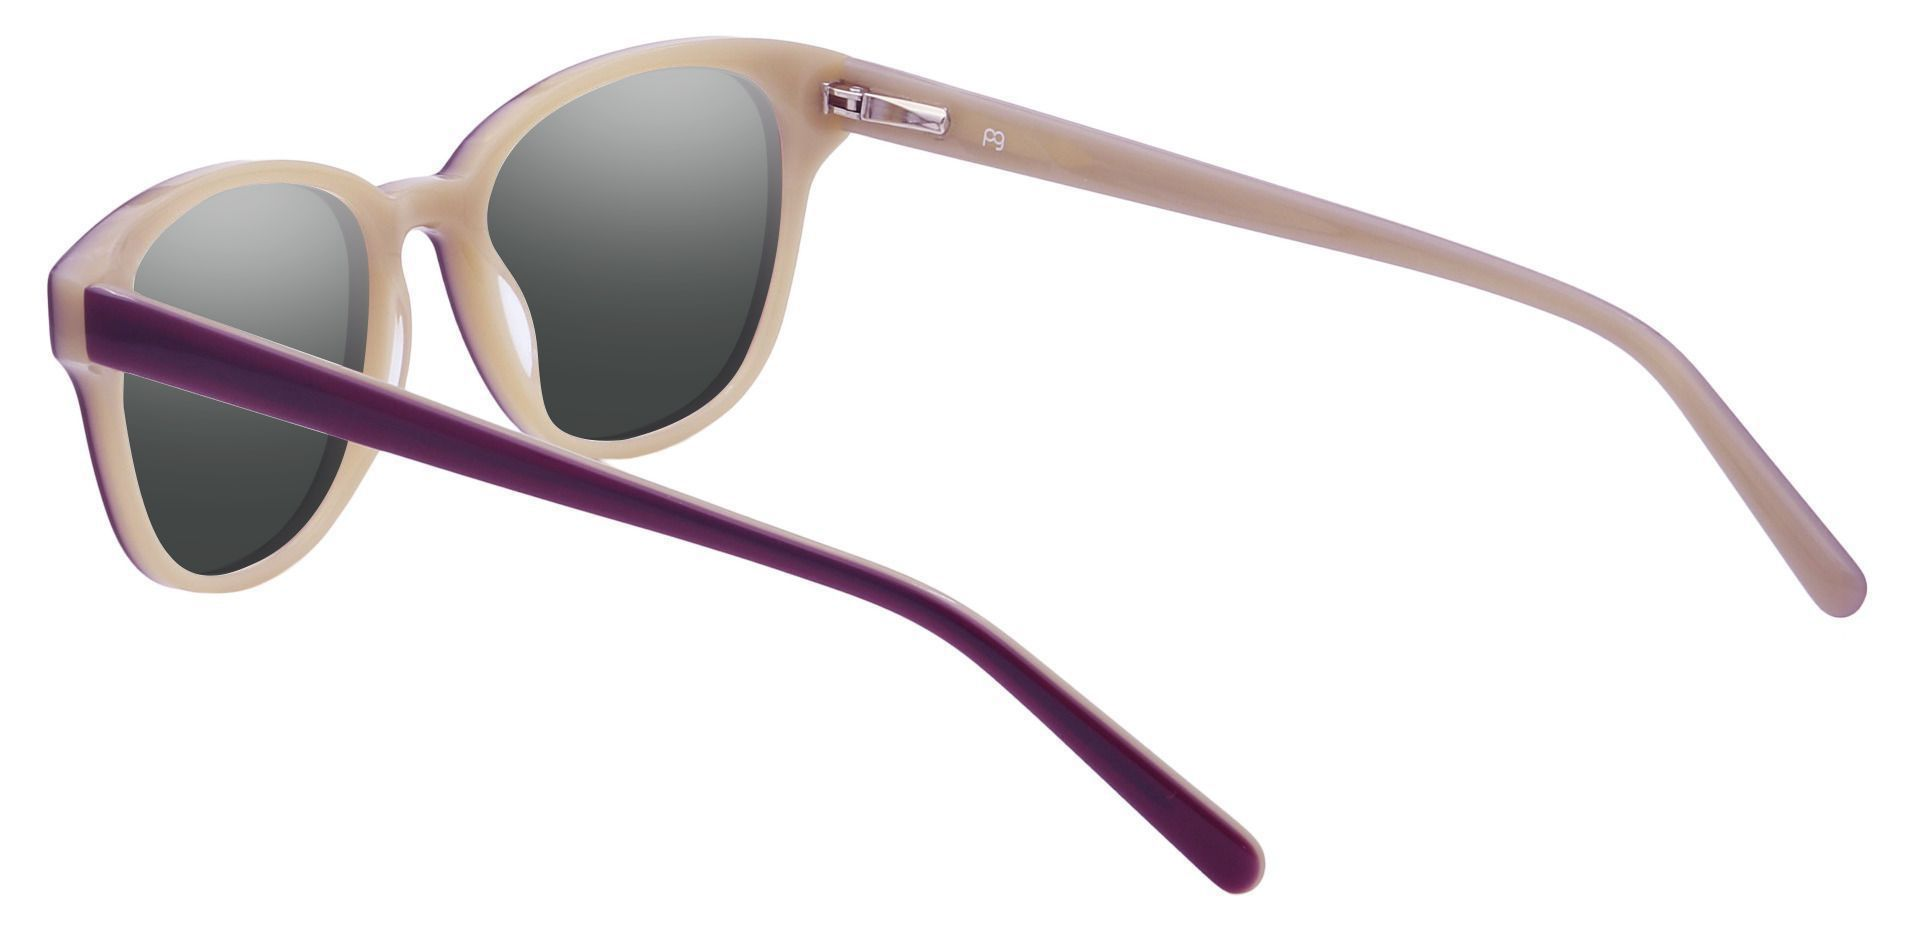 Soleil Classic Square Lined Bifocal Sunglasses - Purple Frame With Gray Lenses